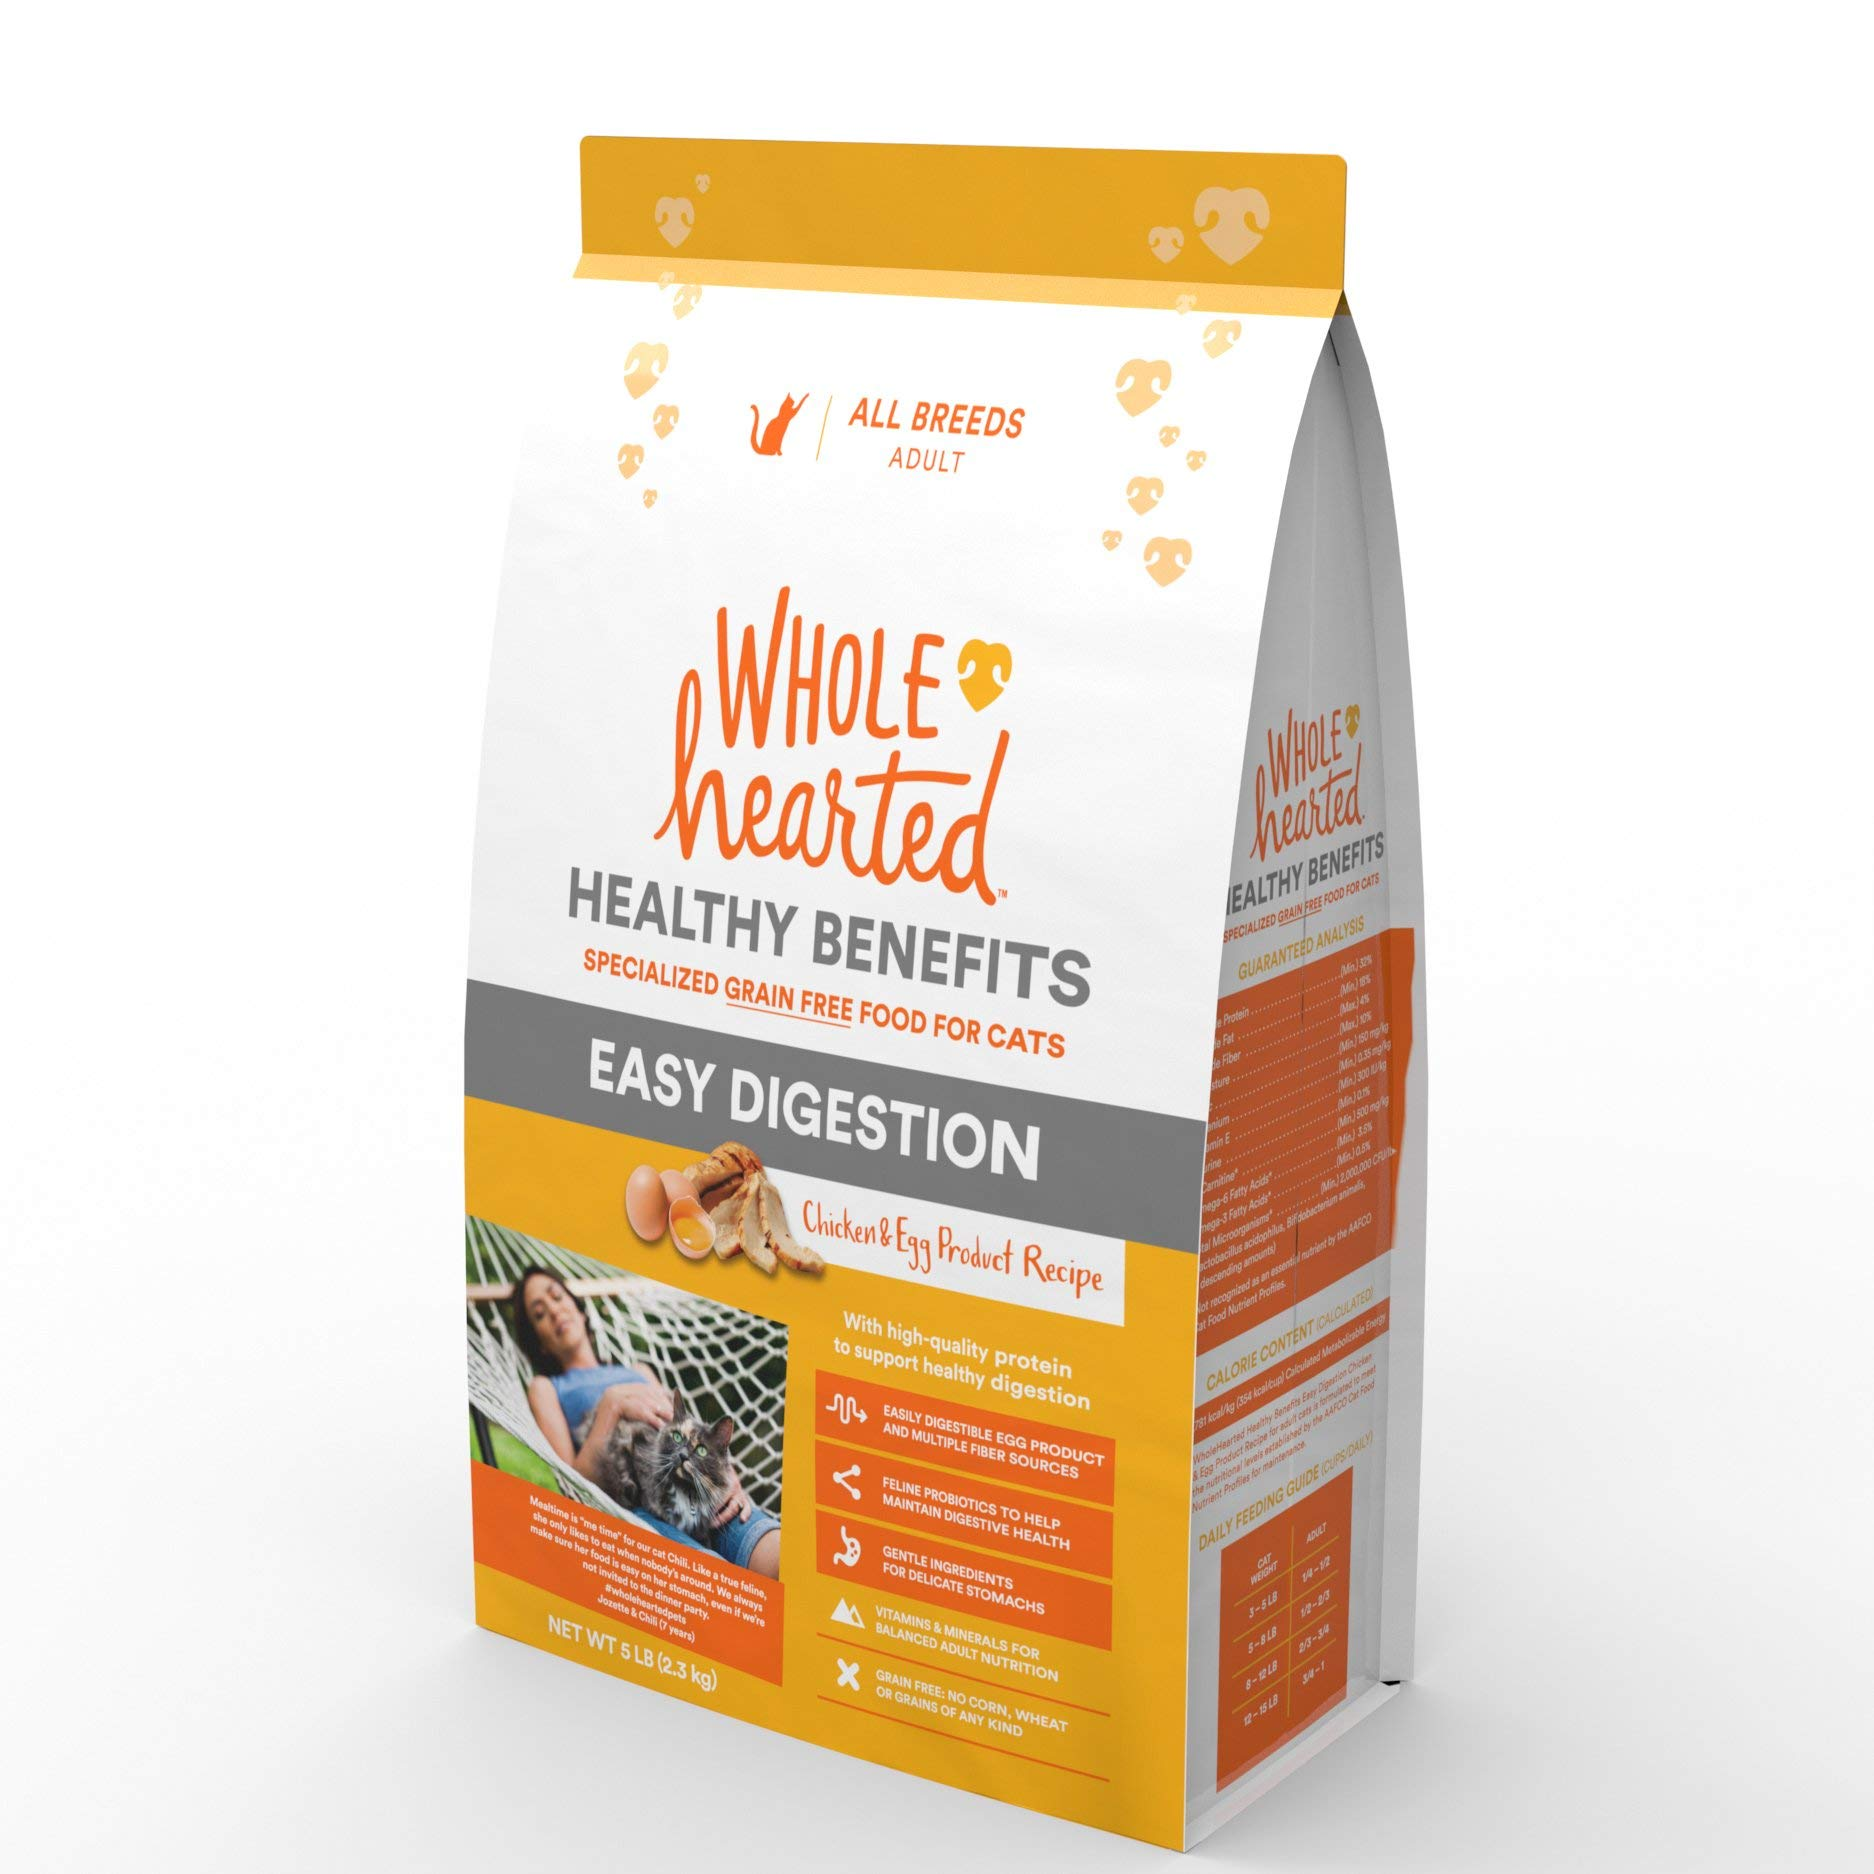 WholeHearted Healthy Digestion Chicken and Egg Product Recipe Dry Cat Food, 5 lbs. by WholeHearted